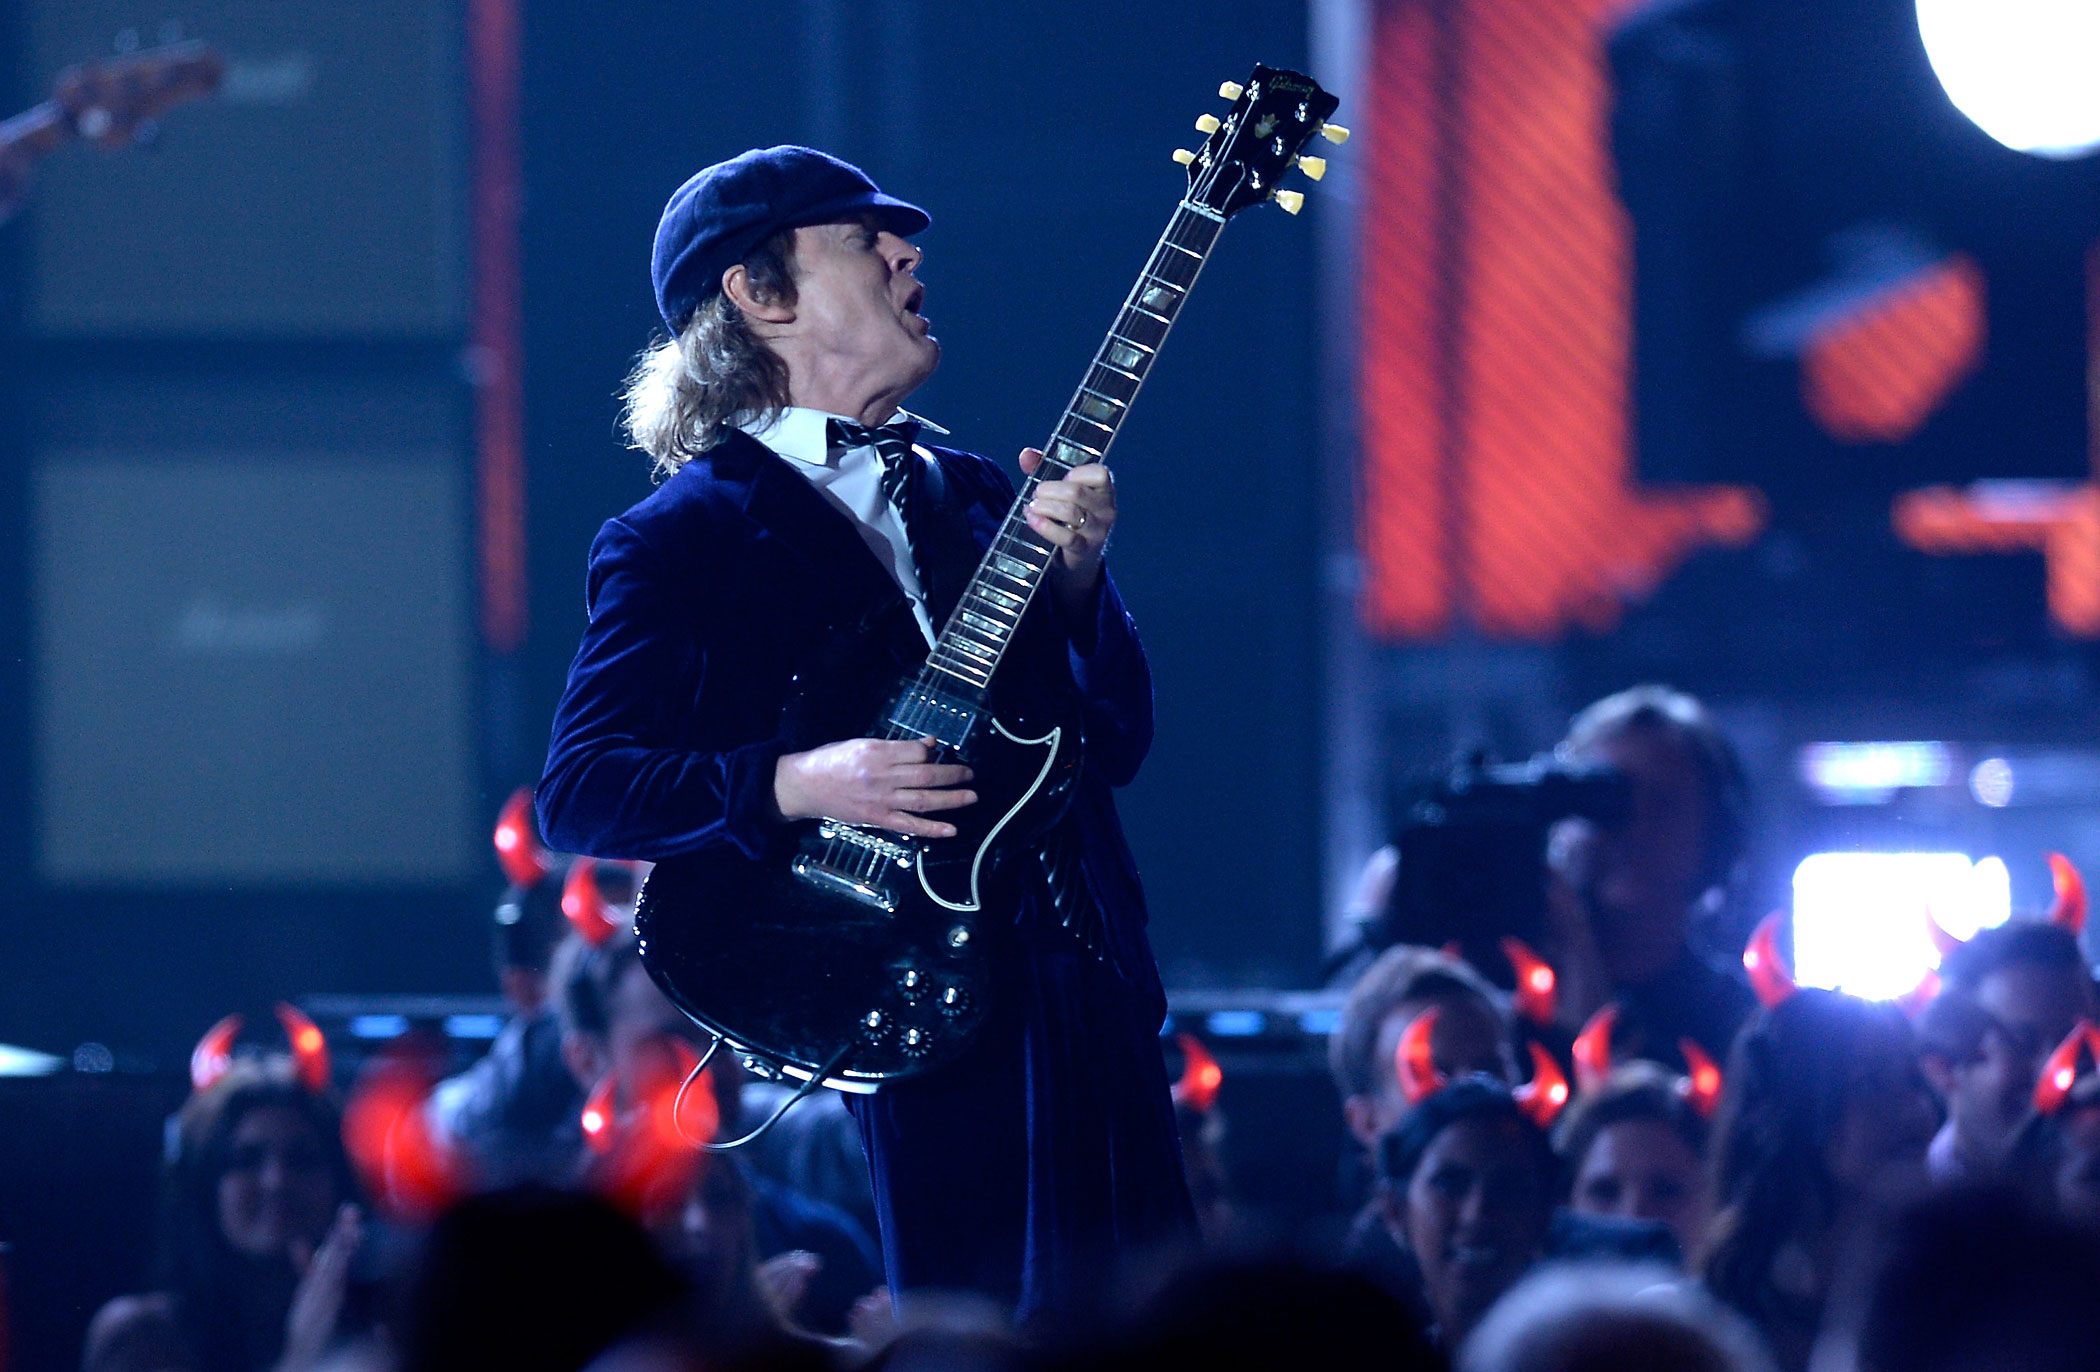 Angus Young of AC/DC performs onstage during the 57th Annual Grammy Awards at the Staples Center in Los Angeles on Feb. 8, 2015